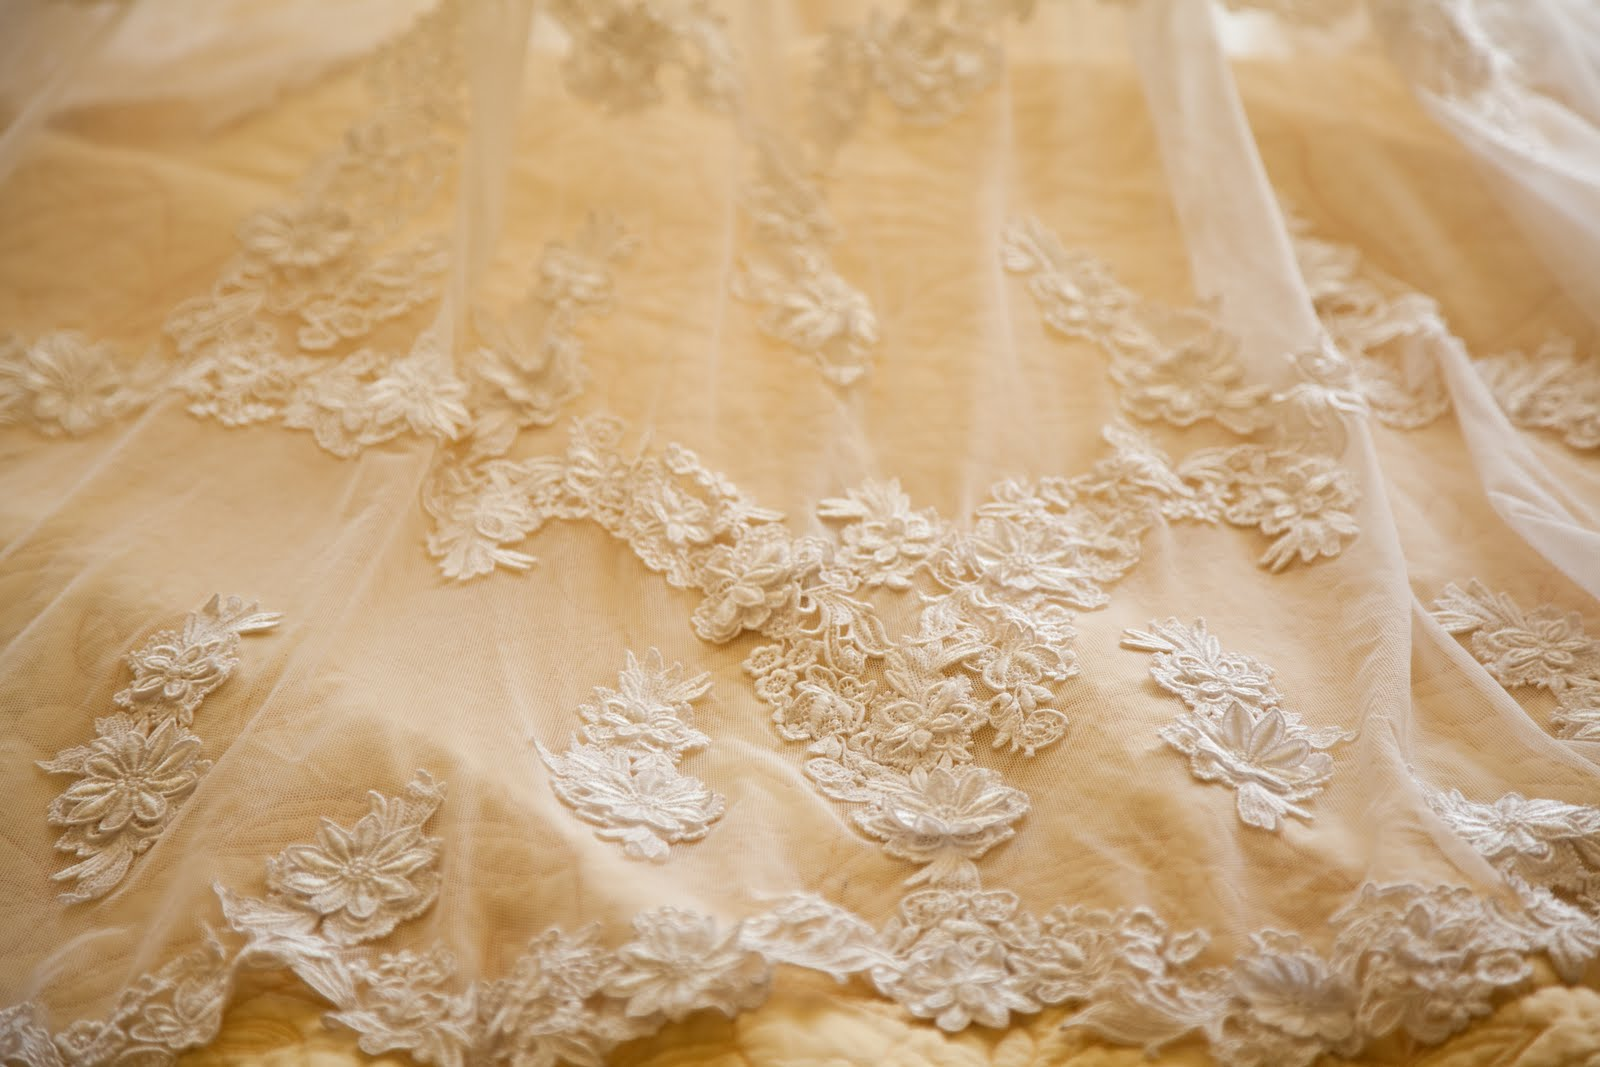 Vintage Lace Wedding Dresses Cap Sleeves Priscilla Of Boston Italian Dress